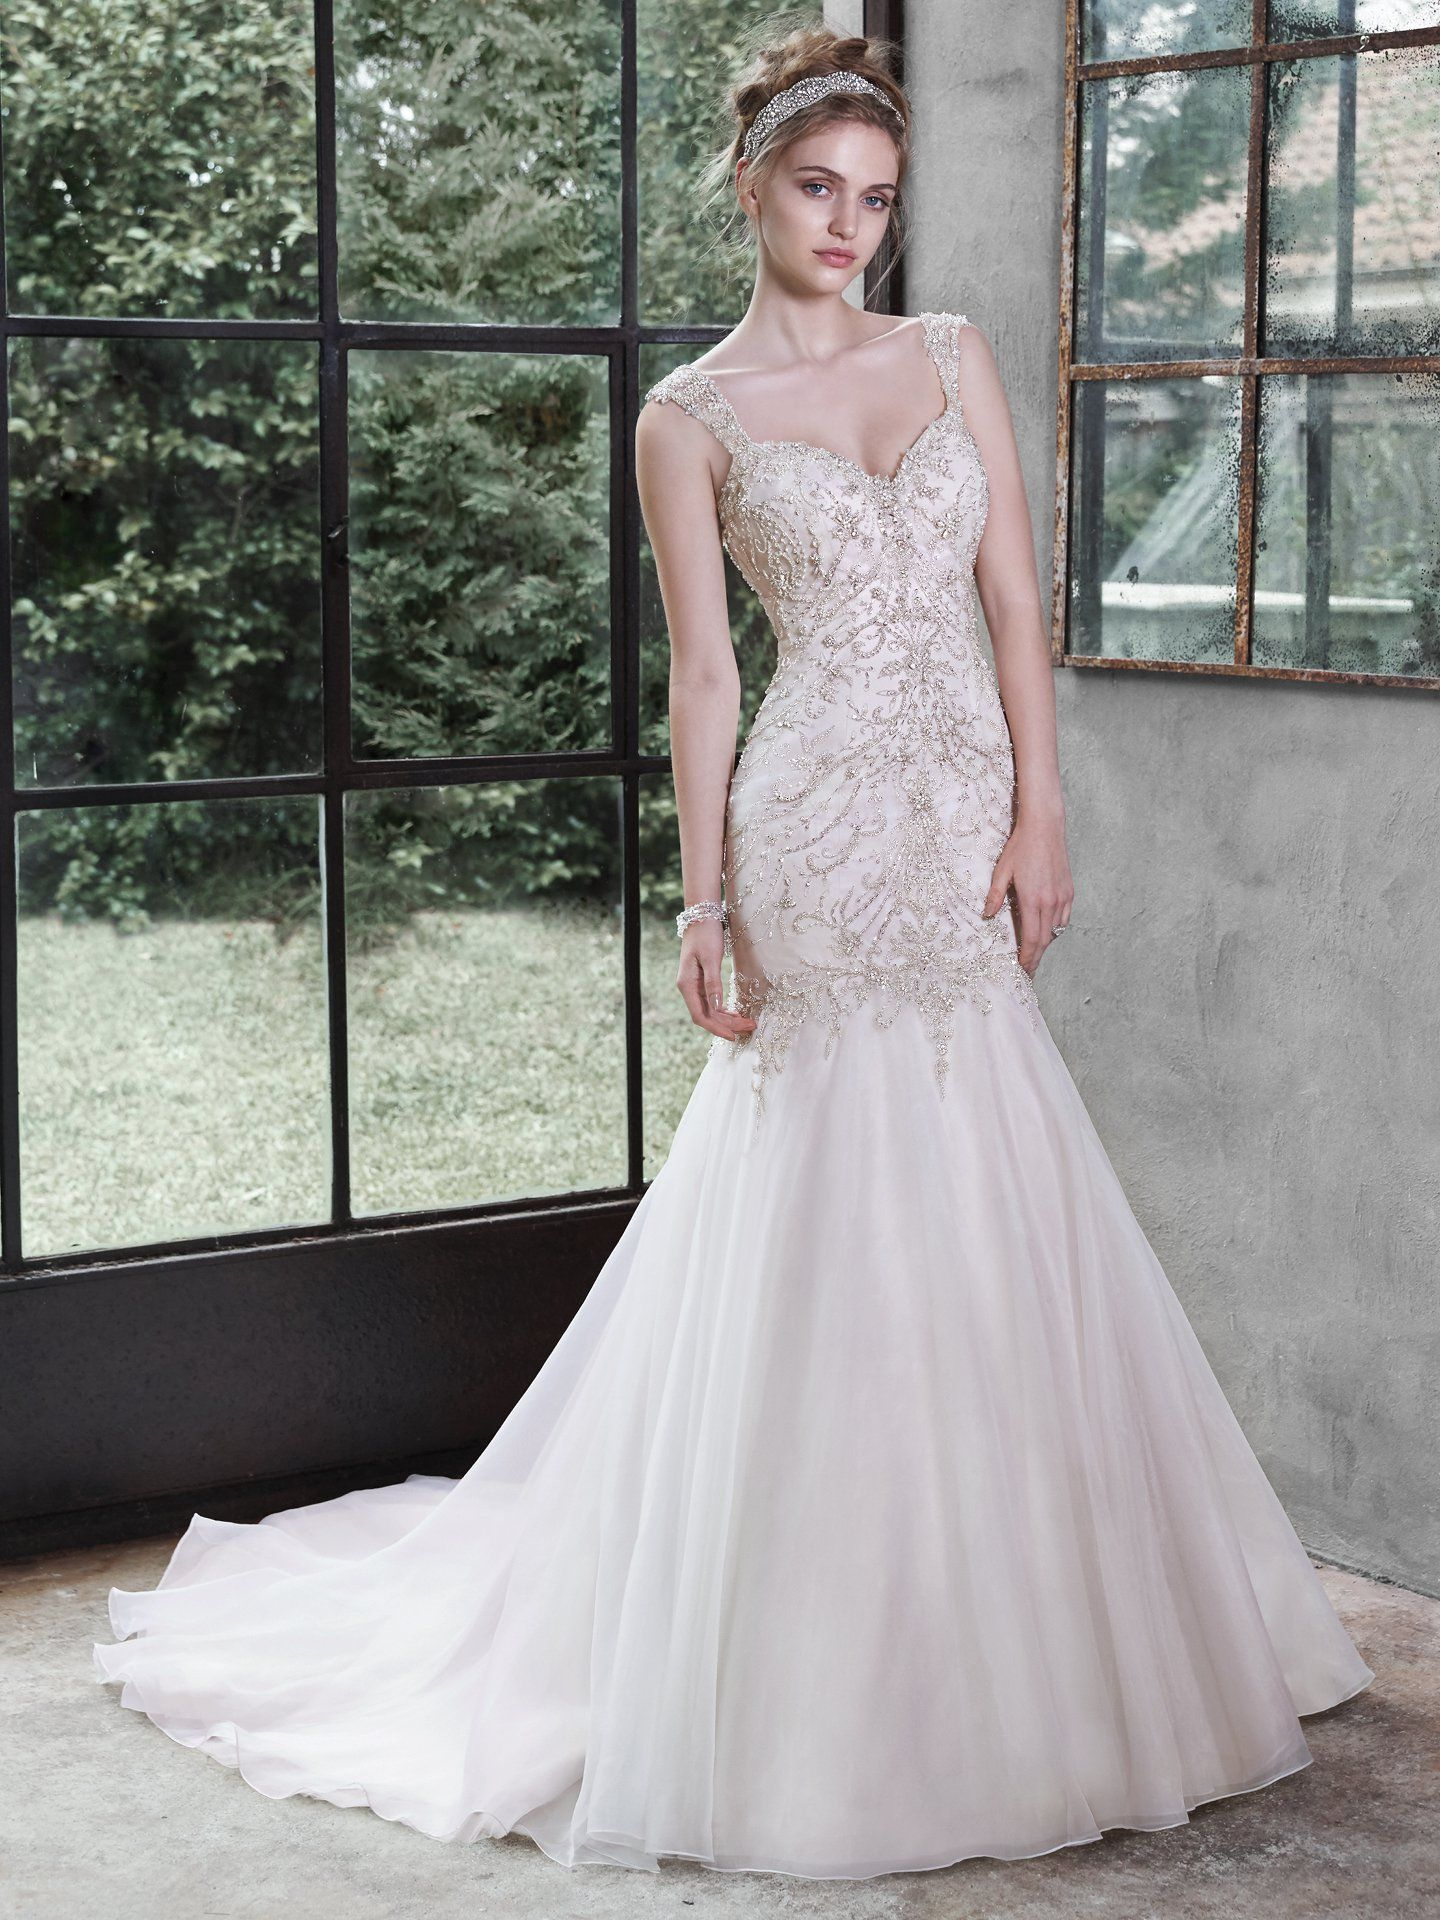 Dramatic wedding dresses  Maggie Sottero Wedding Dresses  Maggie sottero Wedding dress and